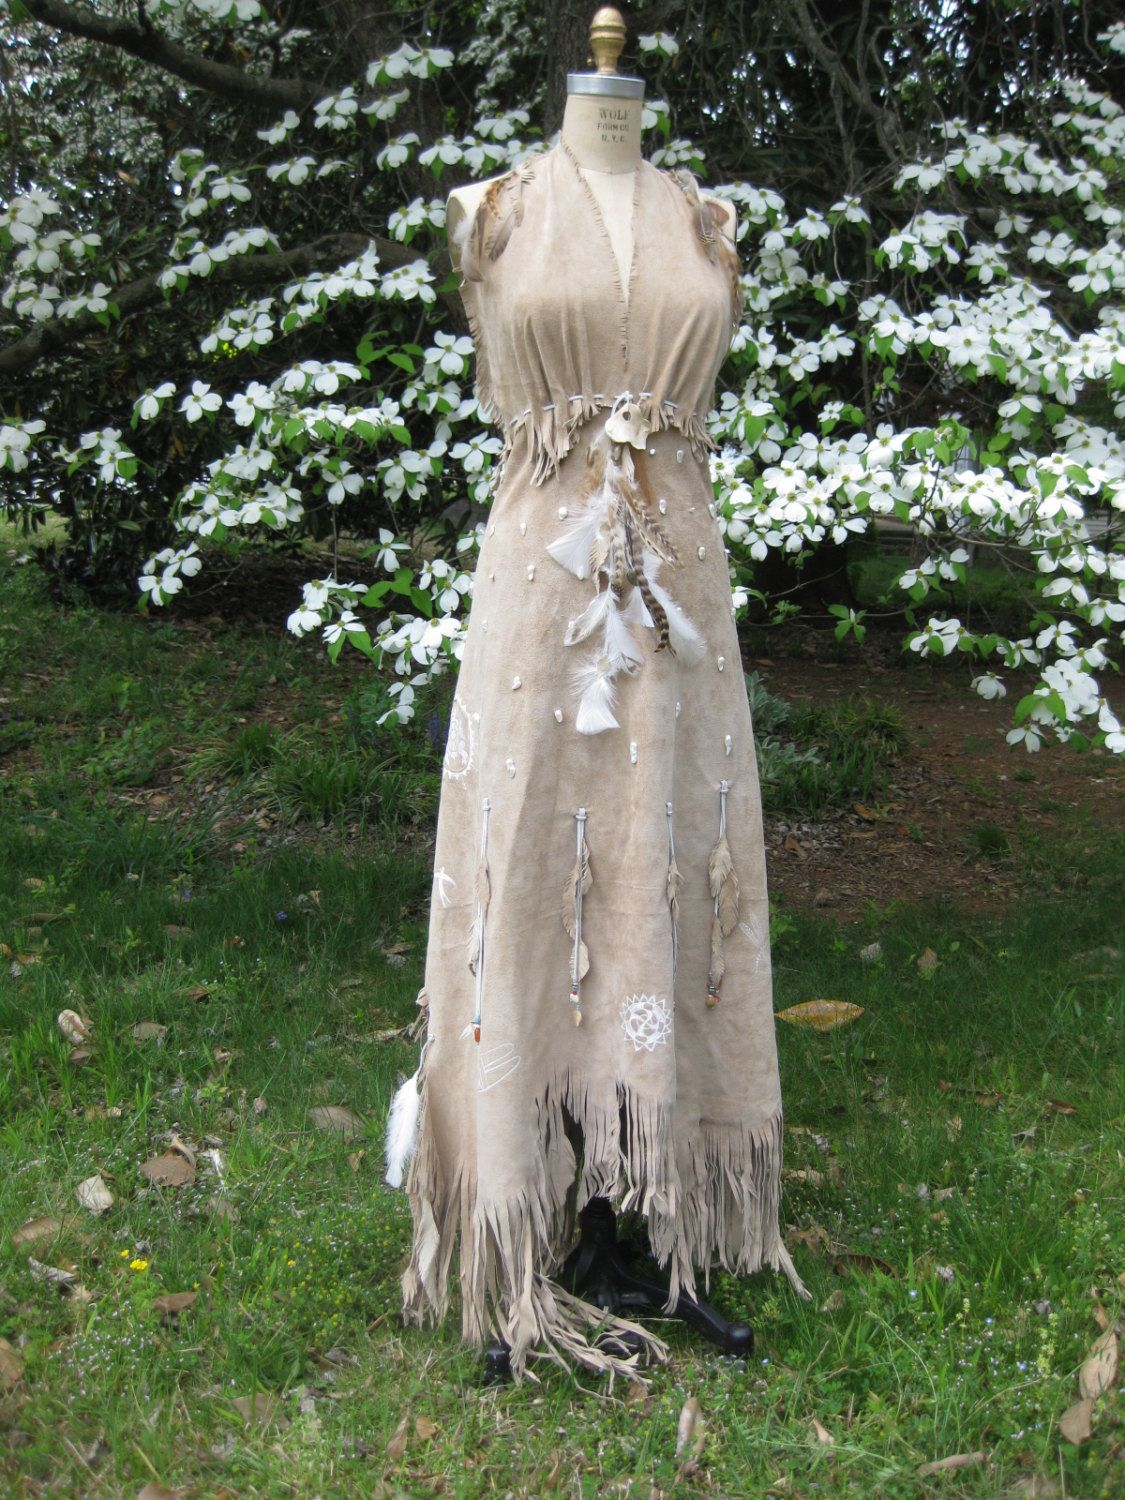 Leather Wedding Dress Native American Inspired Tribal Boho Wedding Dress Western Wedding Dress One Of A Kind Custom Made To Order American Wedding Dress Native American Wedding Dress Native American Dress [ 1500 x 1125 Pixel ]